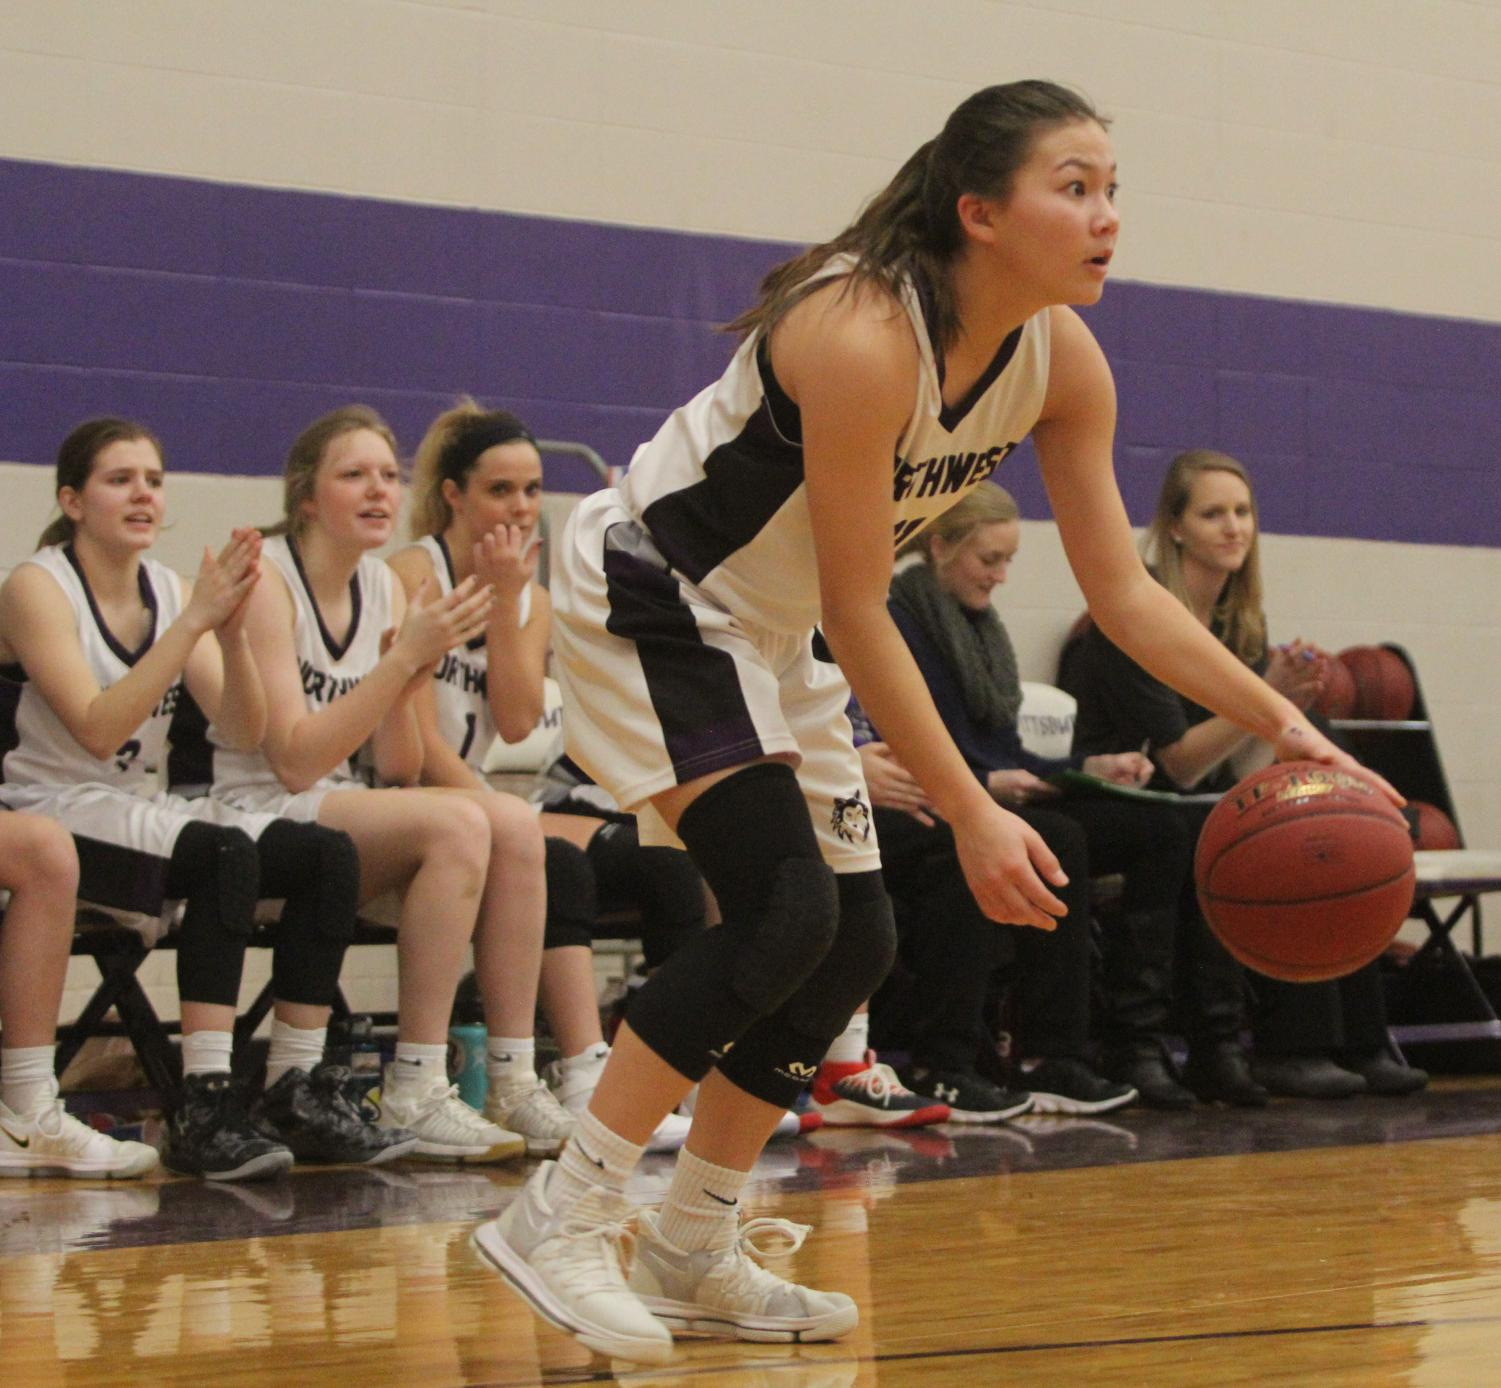 Blue Valley Northwest senior guard Haley Shin (11) dribbles the ball during the fourth quarter of last year's matchup with Pittsburg High at PHS Jan. 20. The Huskies defeated the Purple Dragons, 54-29.